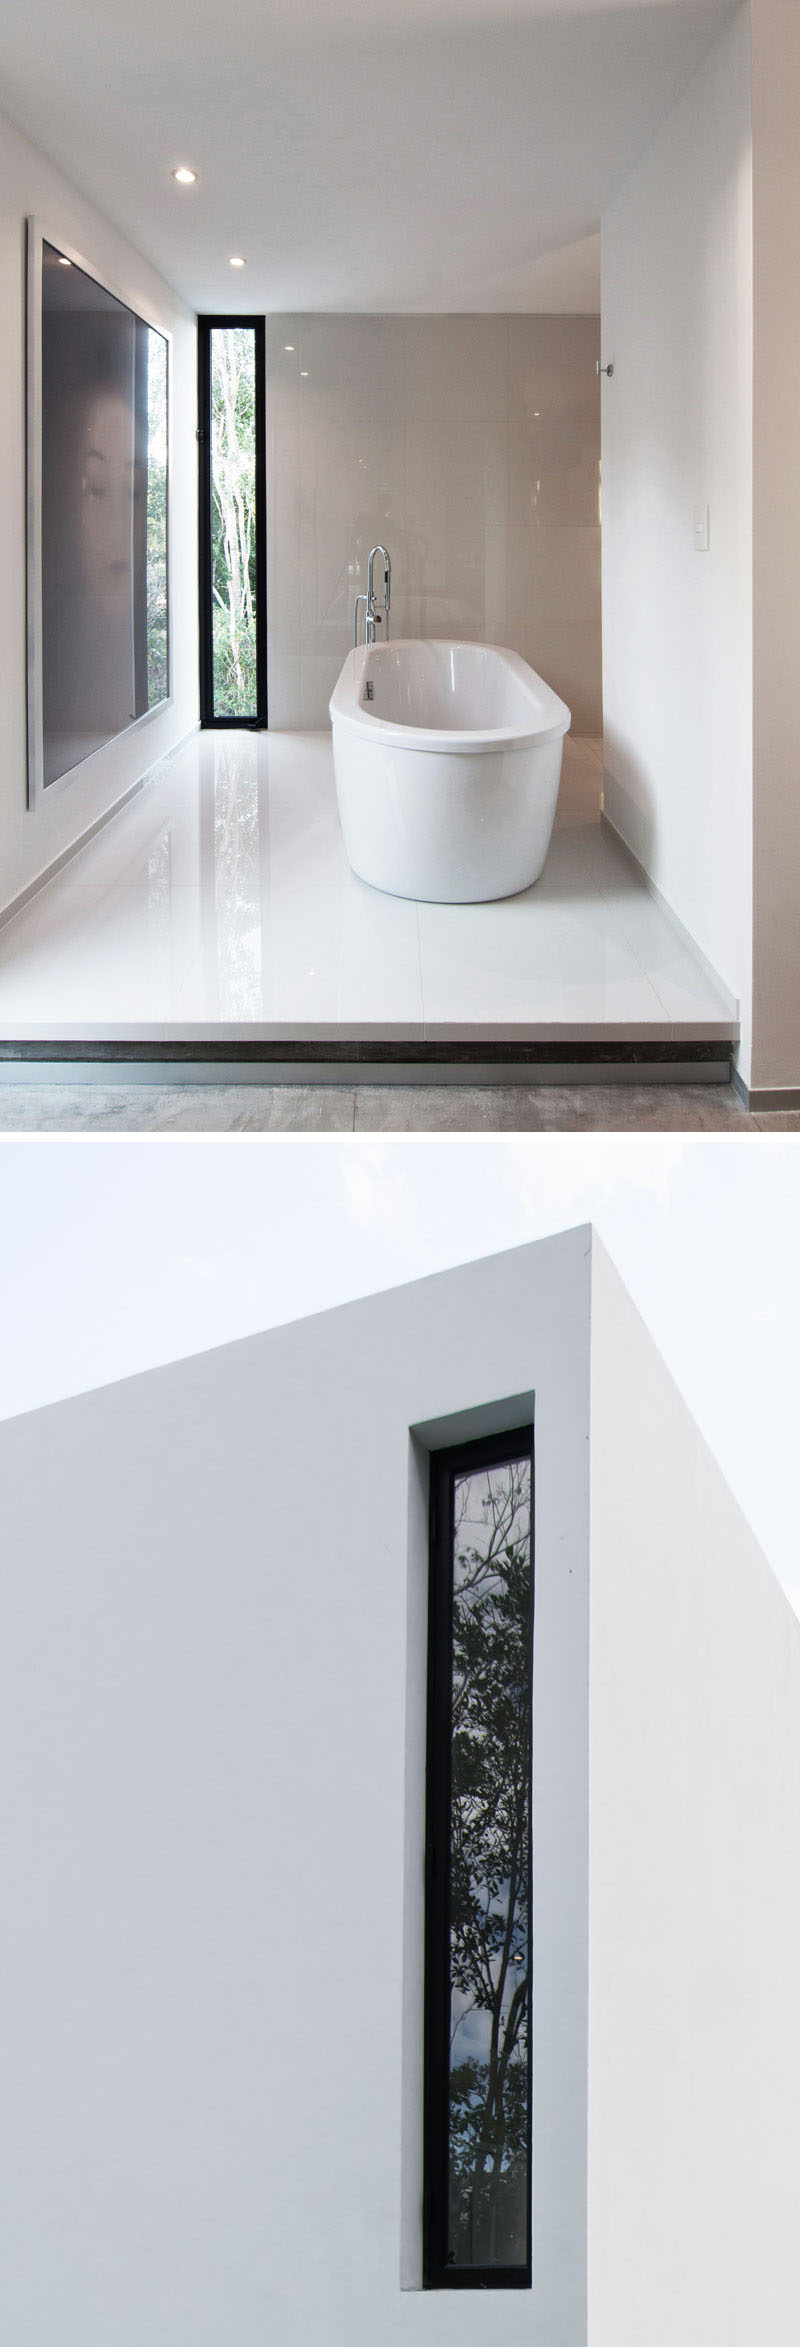 Window Style Ideas - Narrow Vertical Windows // The narrow window in this second floor bathroom allows the freedom of looking out but prevents people down below from seeing more than you'd like them to.